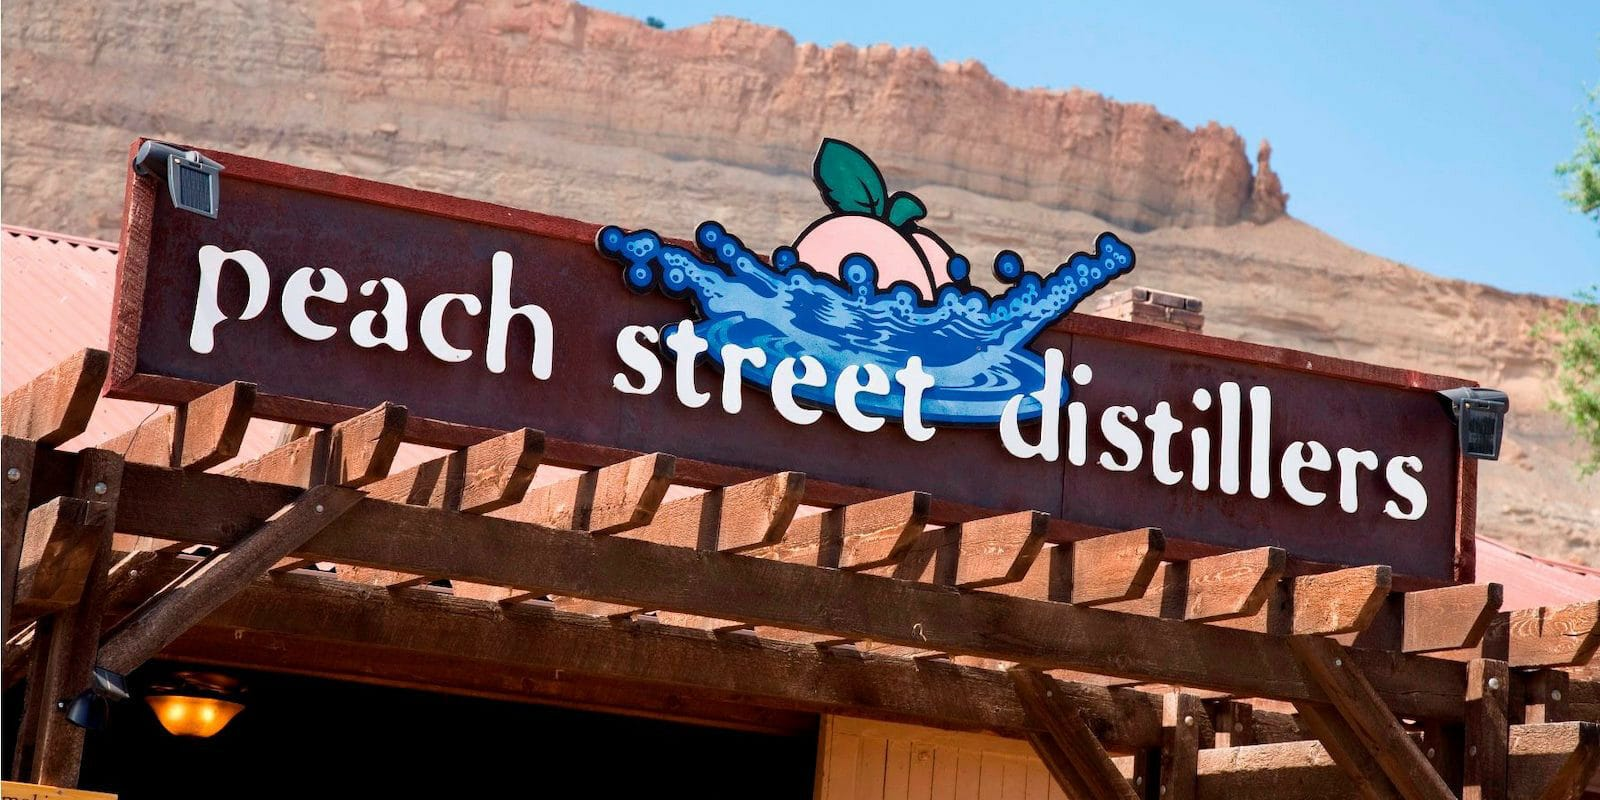 Image of the Peach Street Distillers sign